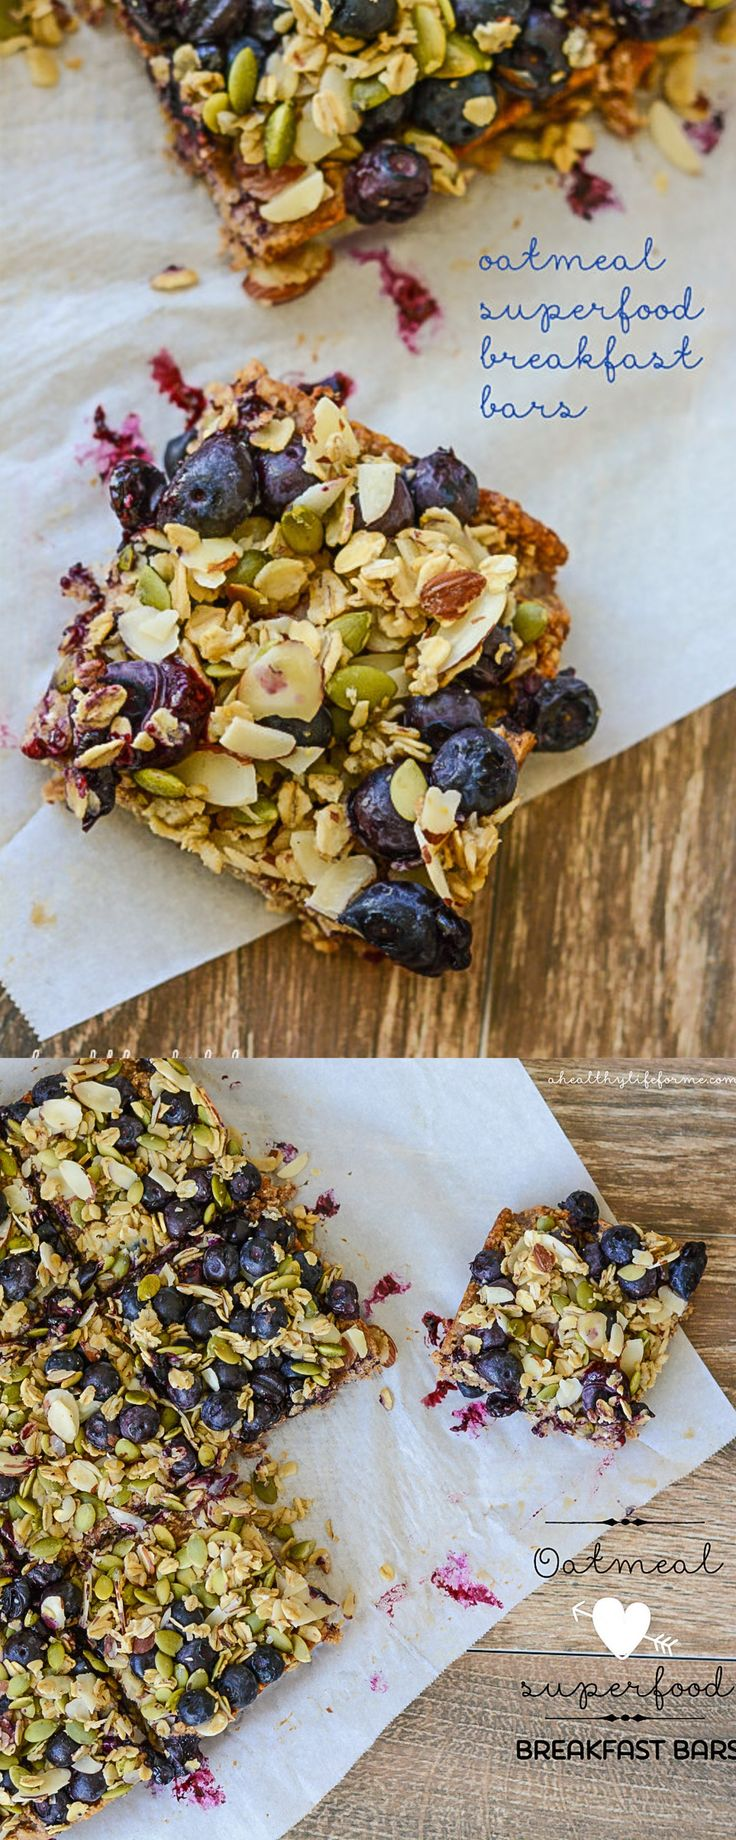 Oatmeal Blueberry Superfood Breakfast Bars are loaded with healthy ingredients for a great morning pick me up   ahealhtylifeforme.com